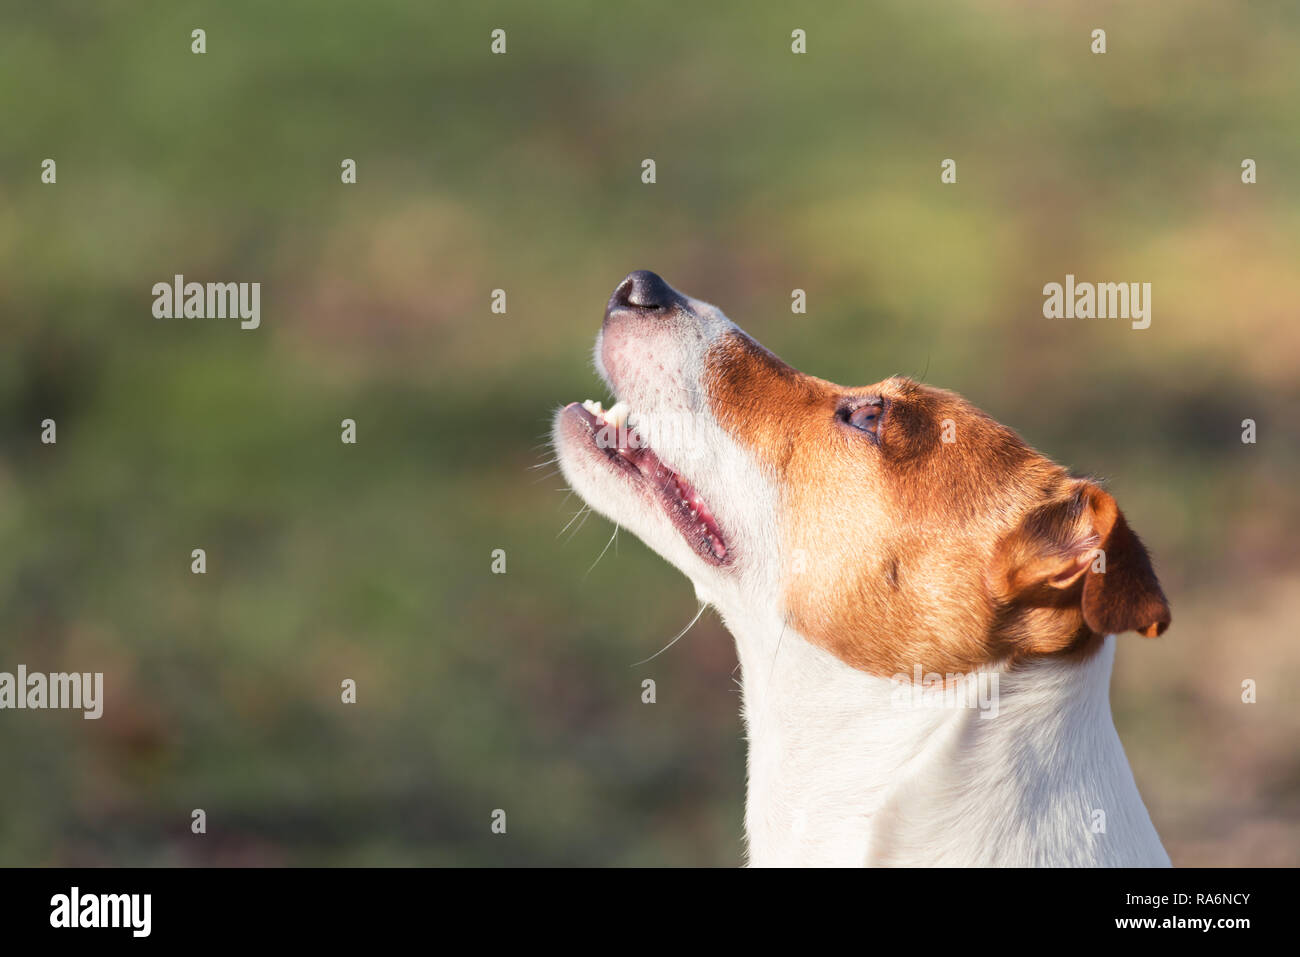 Jack russel terrier with open mouth. Happy Dog with funny gaze - Stock Image